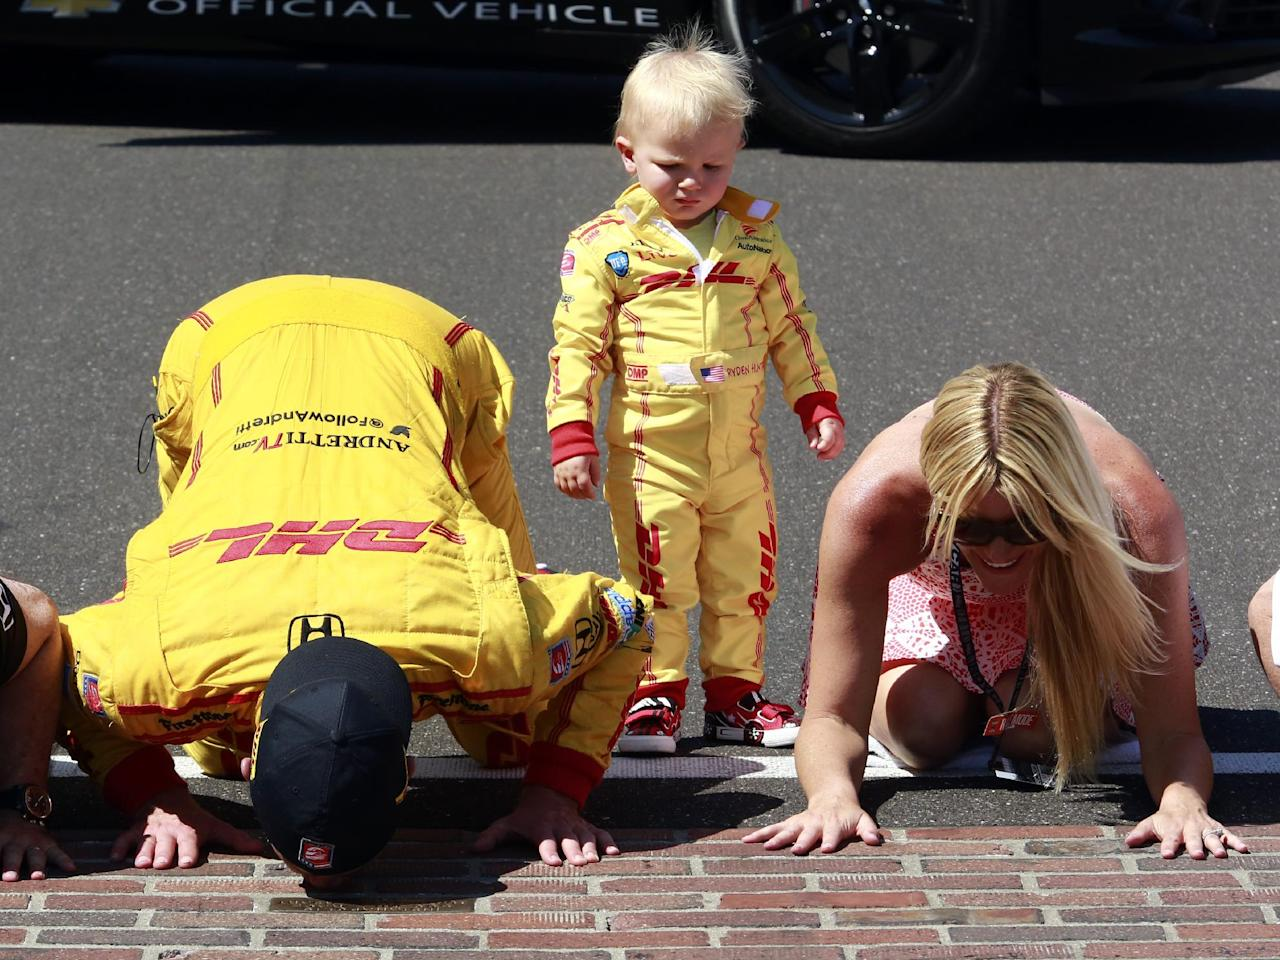 Ryan Hunter-Reay and his wife, Beccy Gordon, kiss the bricks as their son, Ryden, watches after Hunter-Reay won during the 98th running of the Indianapolis 500 IndyCar auto race at the Indianapolis Motor Speedway in Indianapolis, Sunday, May 25, 2014. (AP Photo/R Brent Smith)